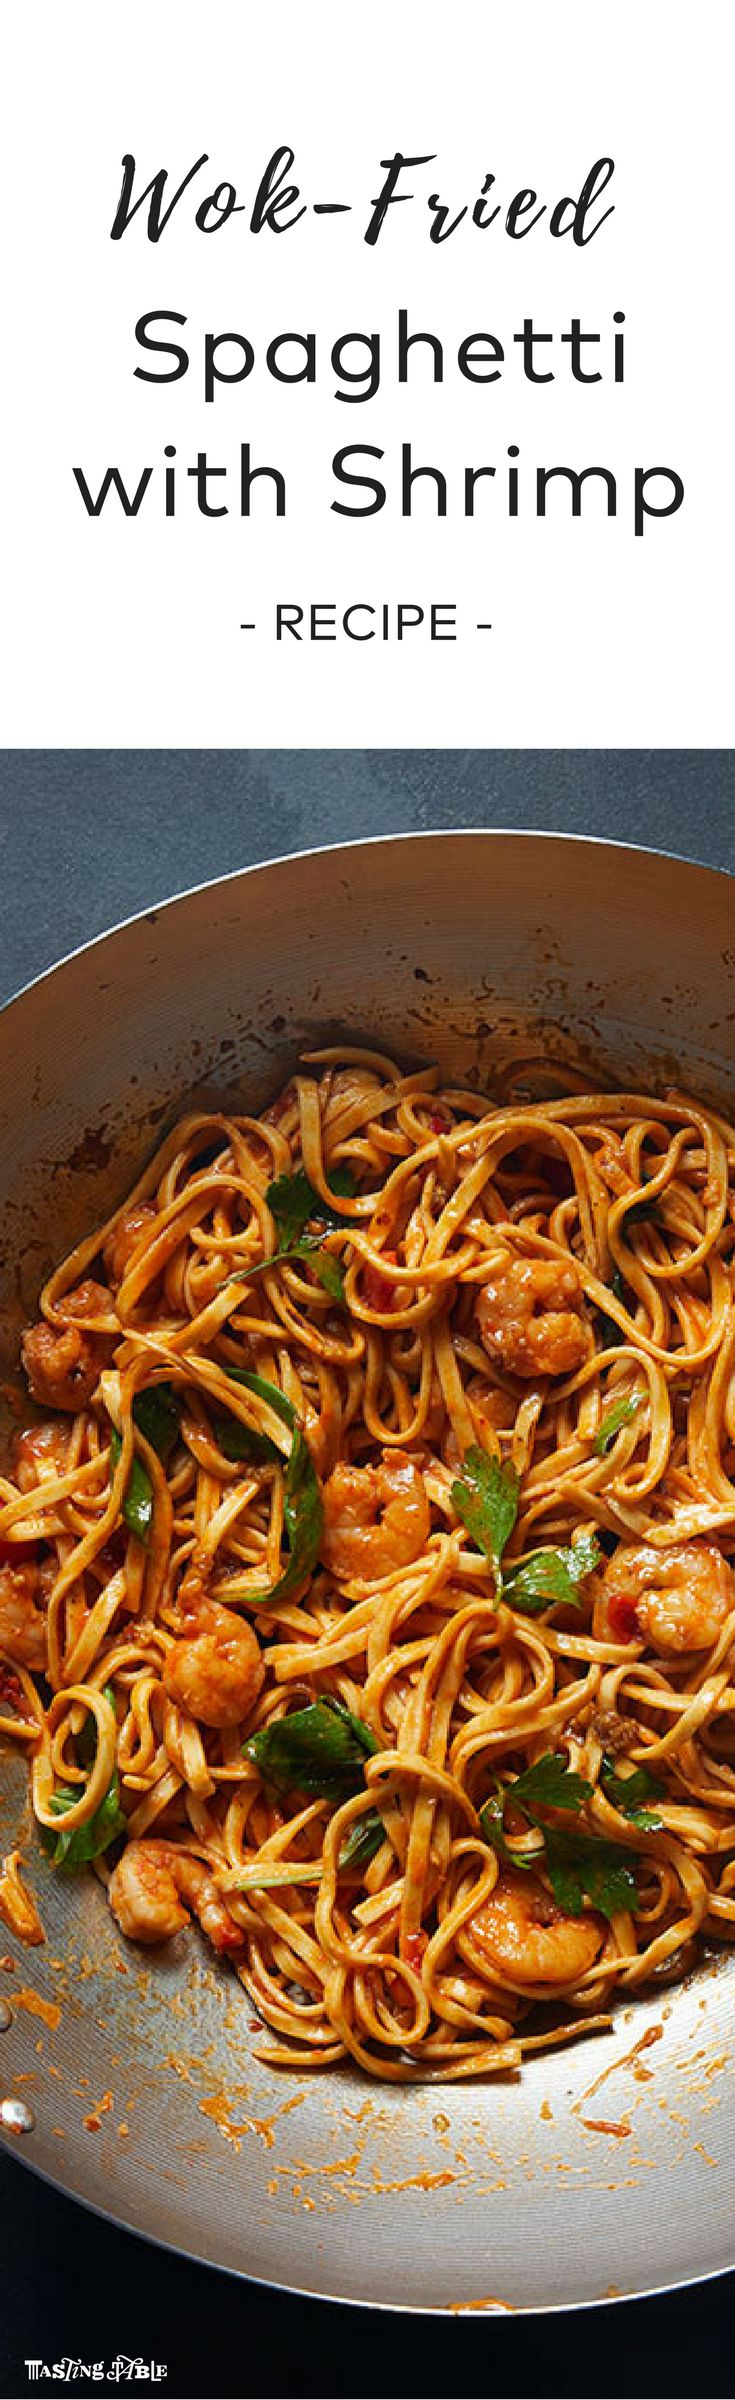 Fresh spaghetti is stir-fried in a wok before getting tossed in a spicy arrabbiata sauce with shrimp for a new twist on a classic pasta dish.